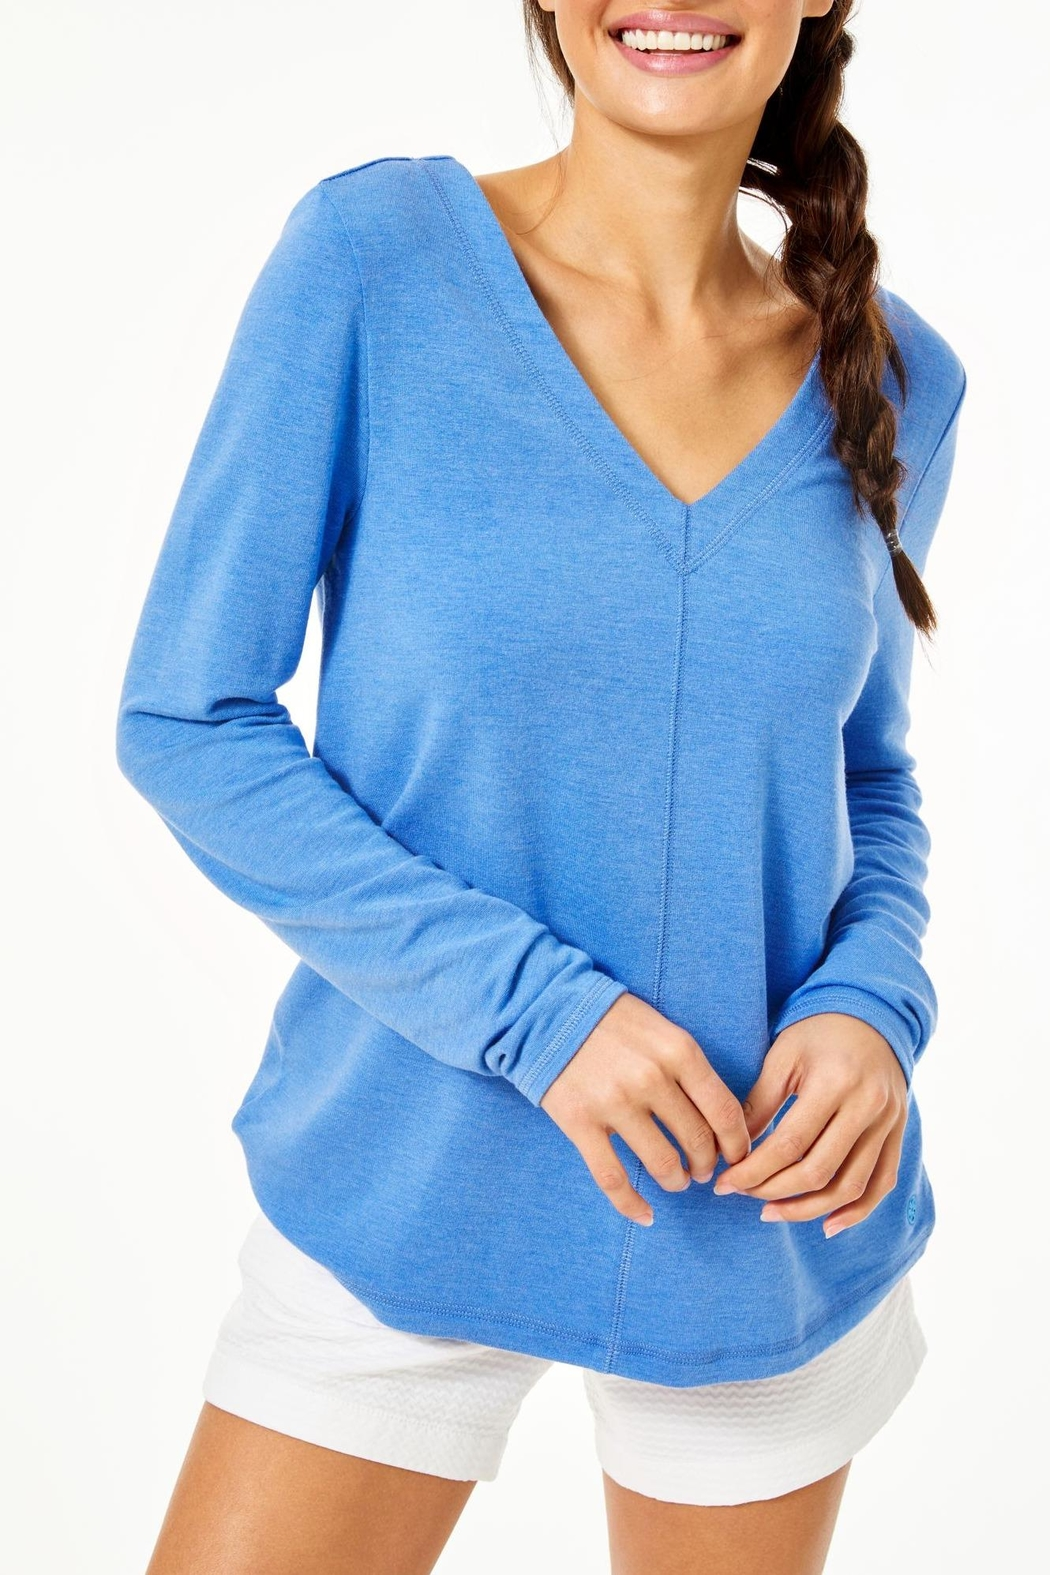 Lilly Pulitzer Luxletic Areli Pullover - Front Full Image